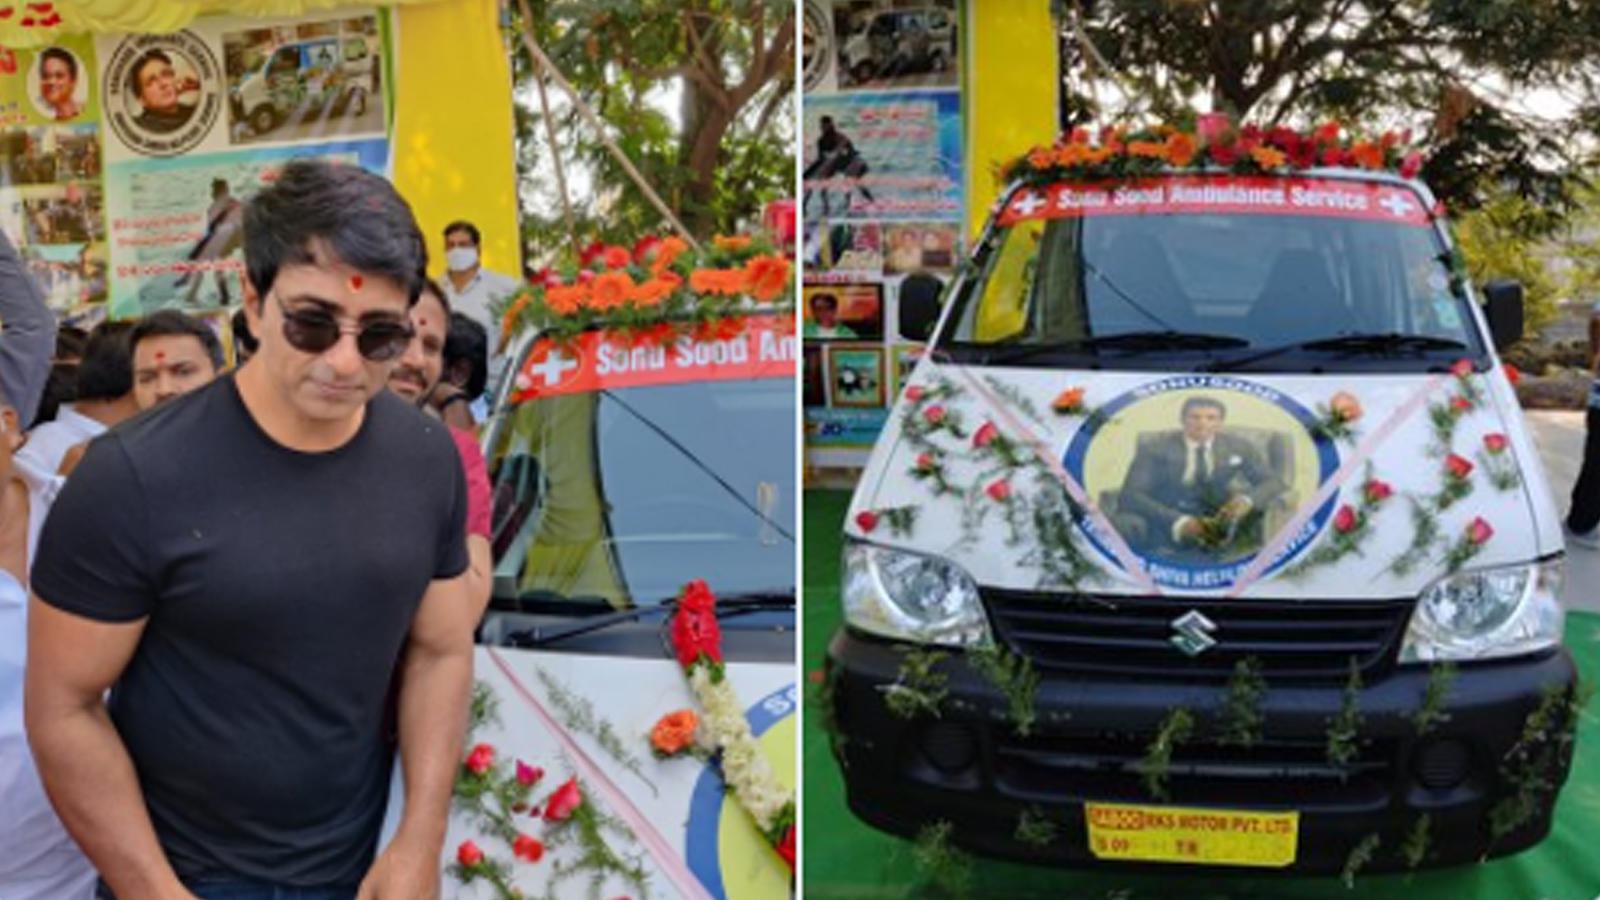 sonu-sood-inaugurates-sonu-sood-ambulance-service-in-telangana-to-help-patients-who-cannot-afford-medical-facilities